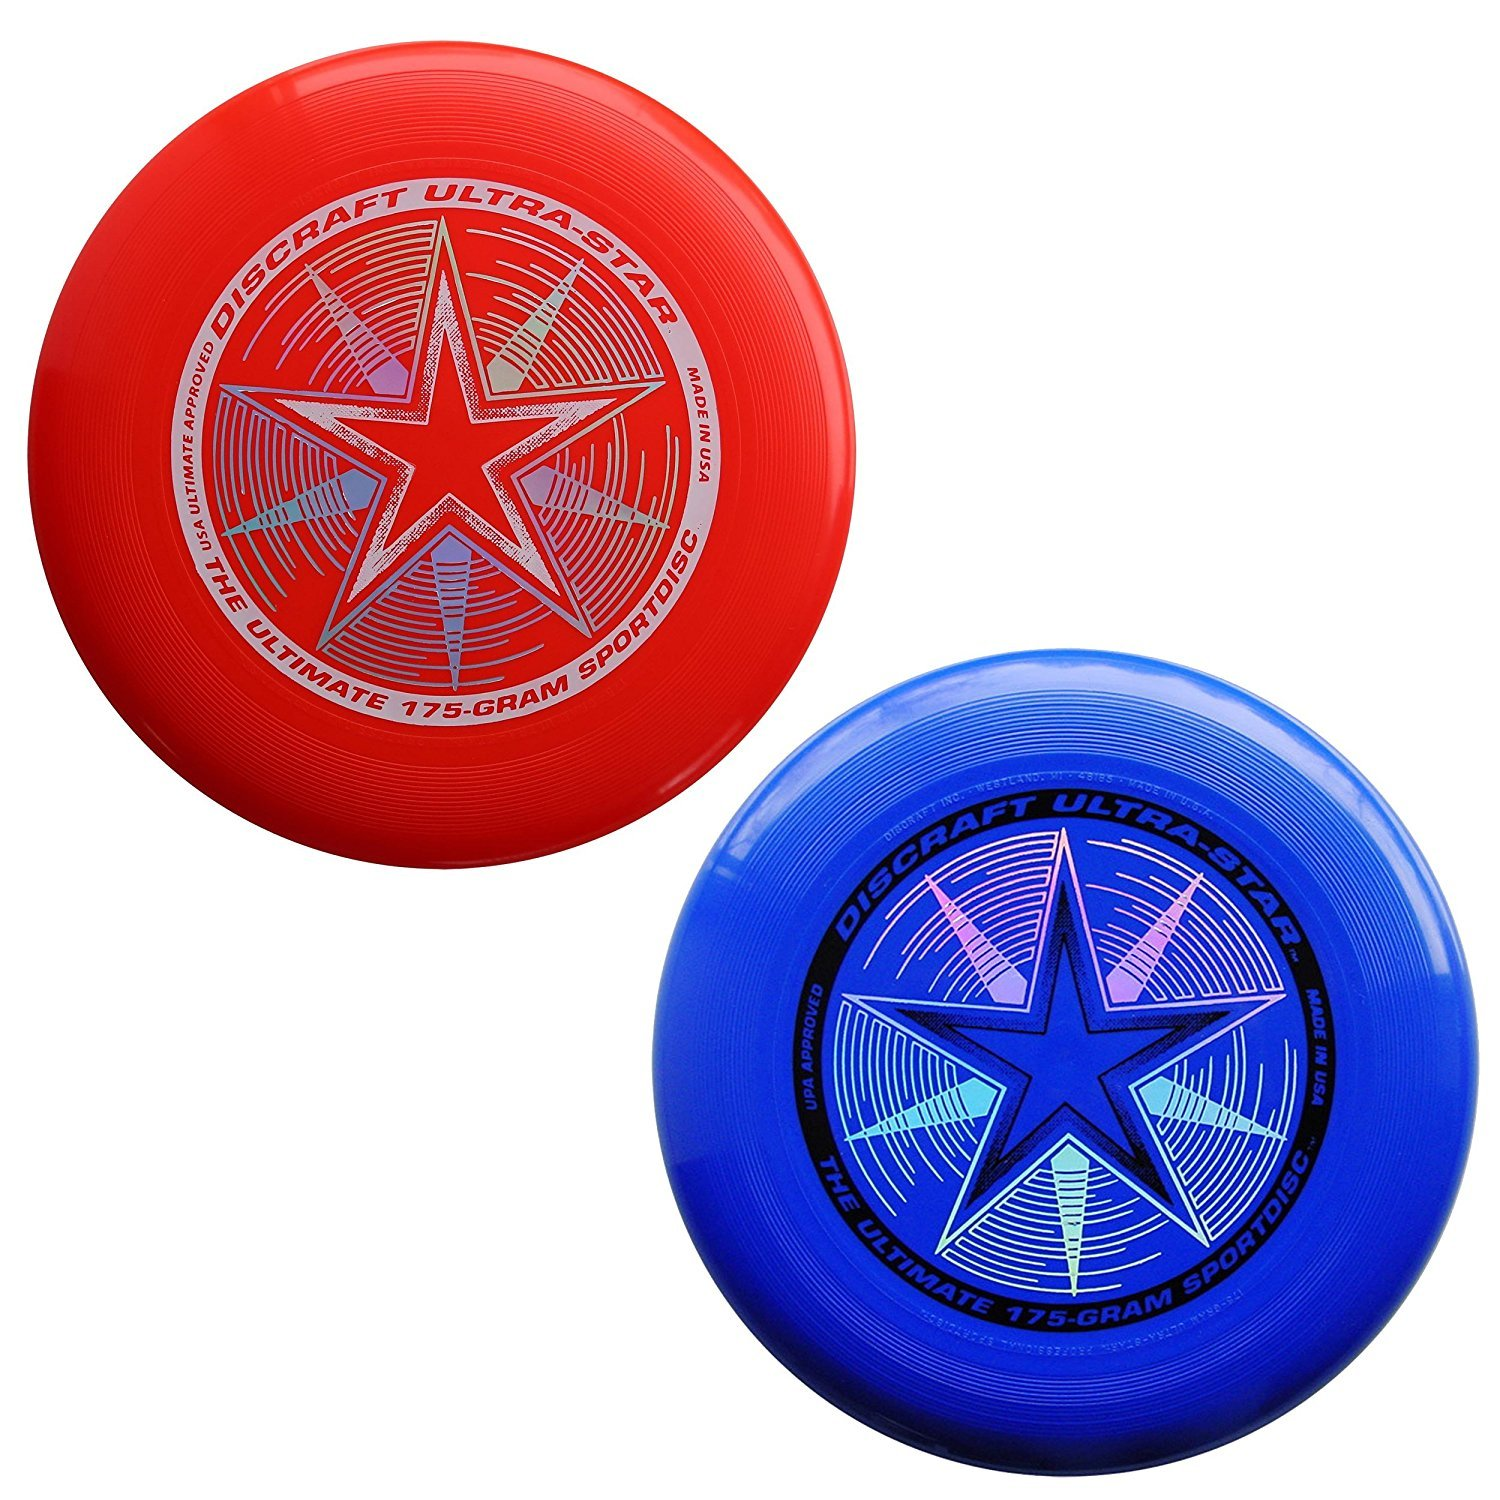 Discraft 175 gram Ultra Star Sport Disc - 2 Pack... (Red & Blue) by Discraft